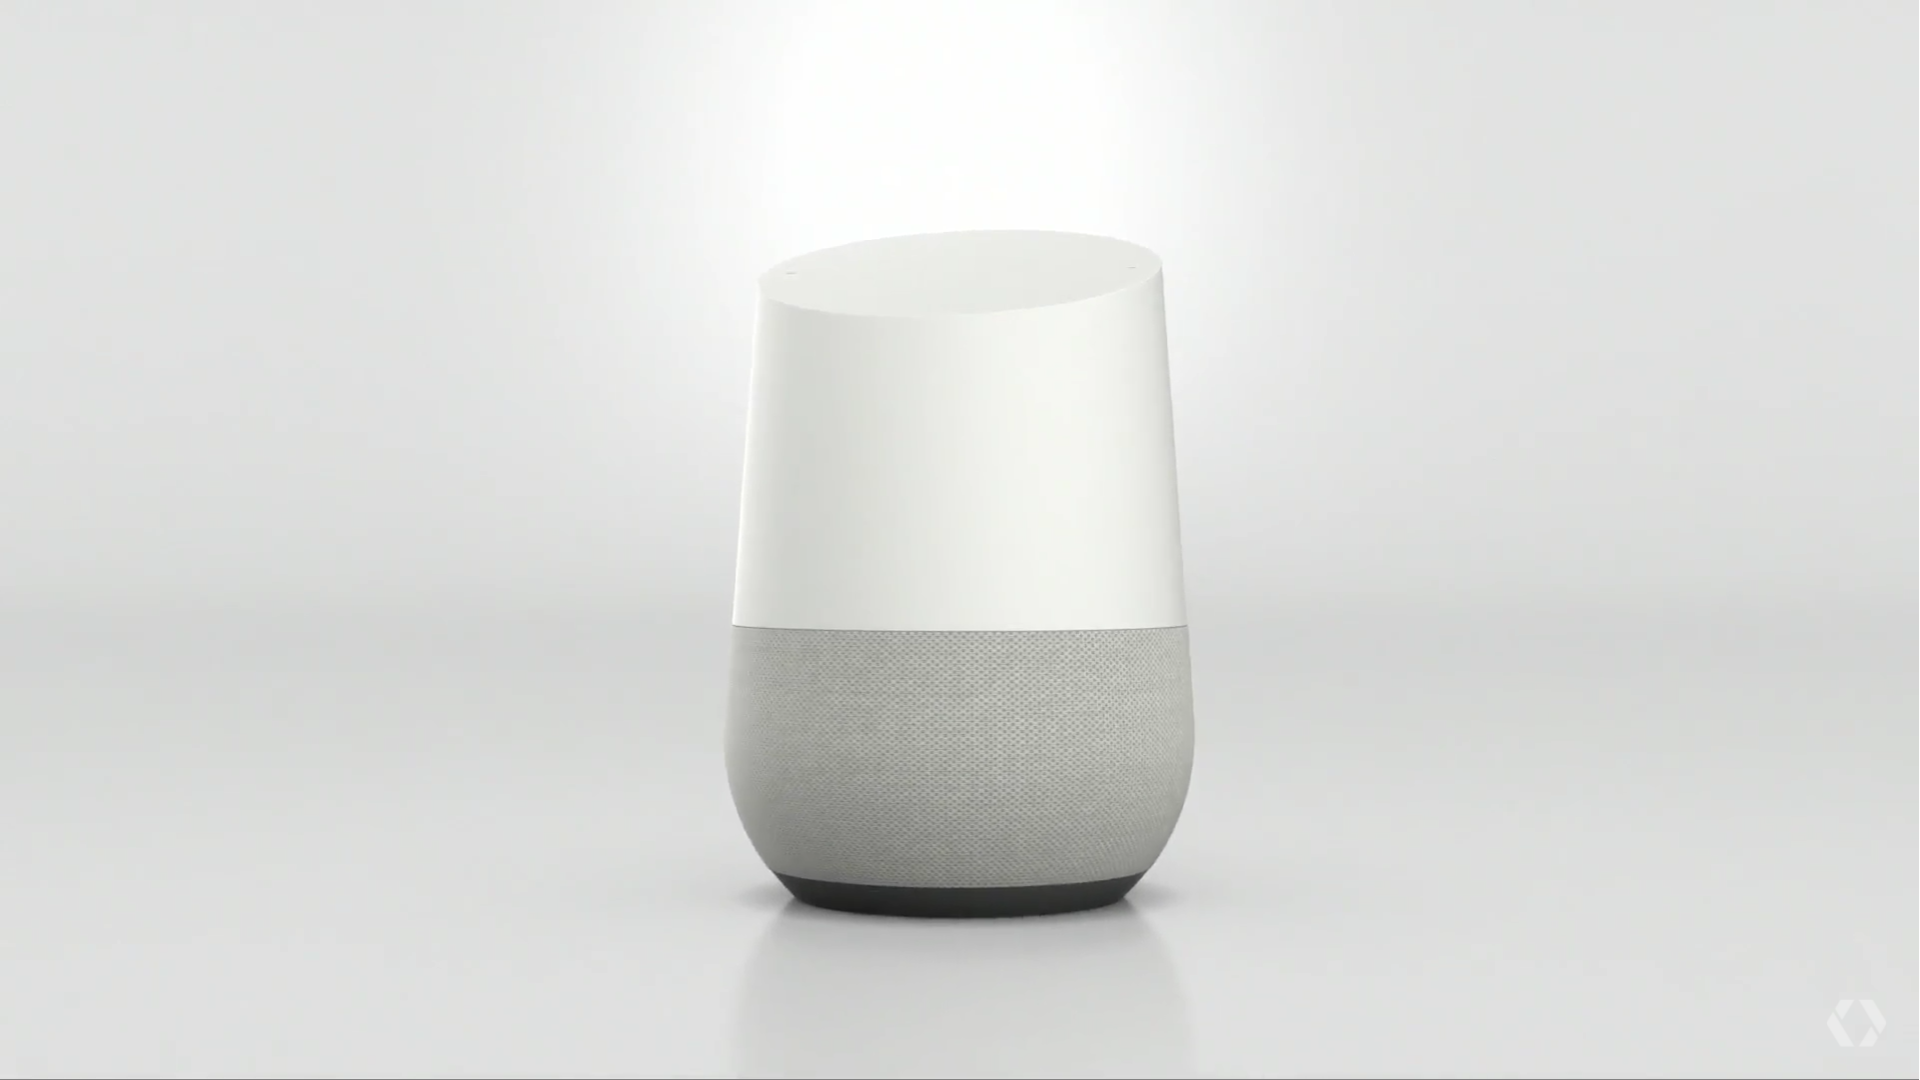 google home is google 39 s voice controlled smart home hub coming later this year. Black Bedroom Furniture Sets. Home Design Ideas